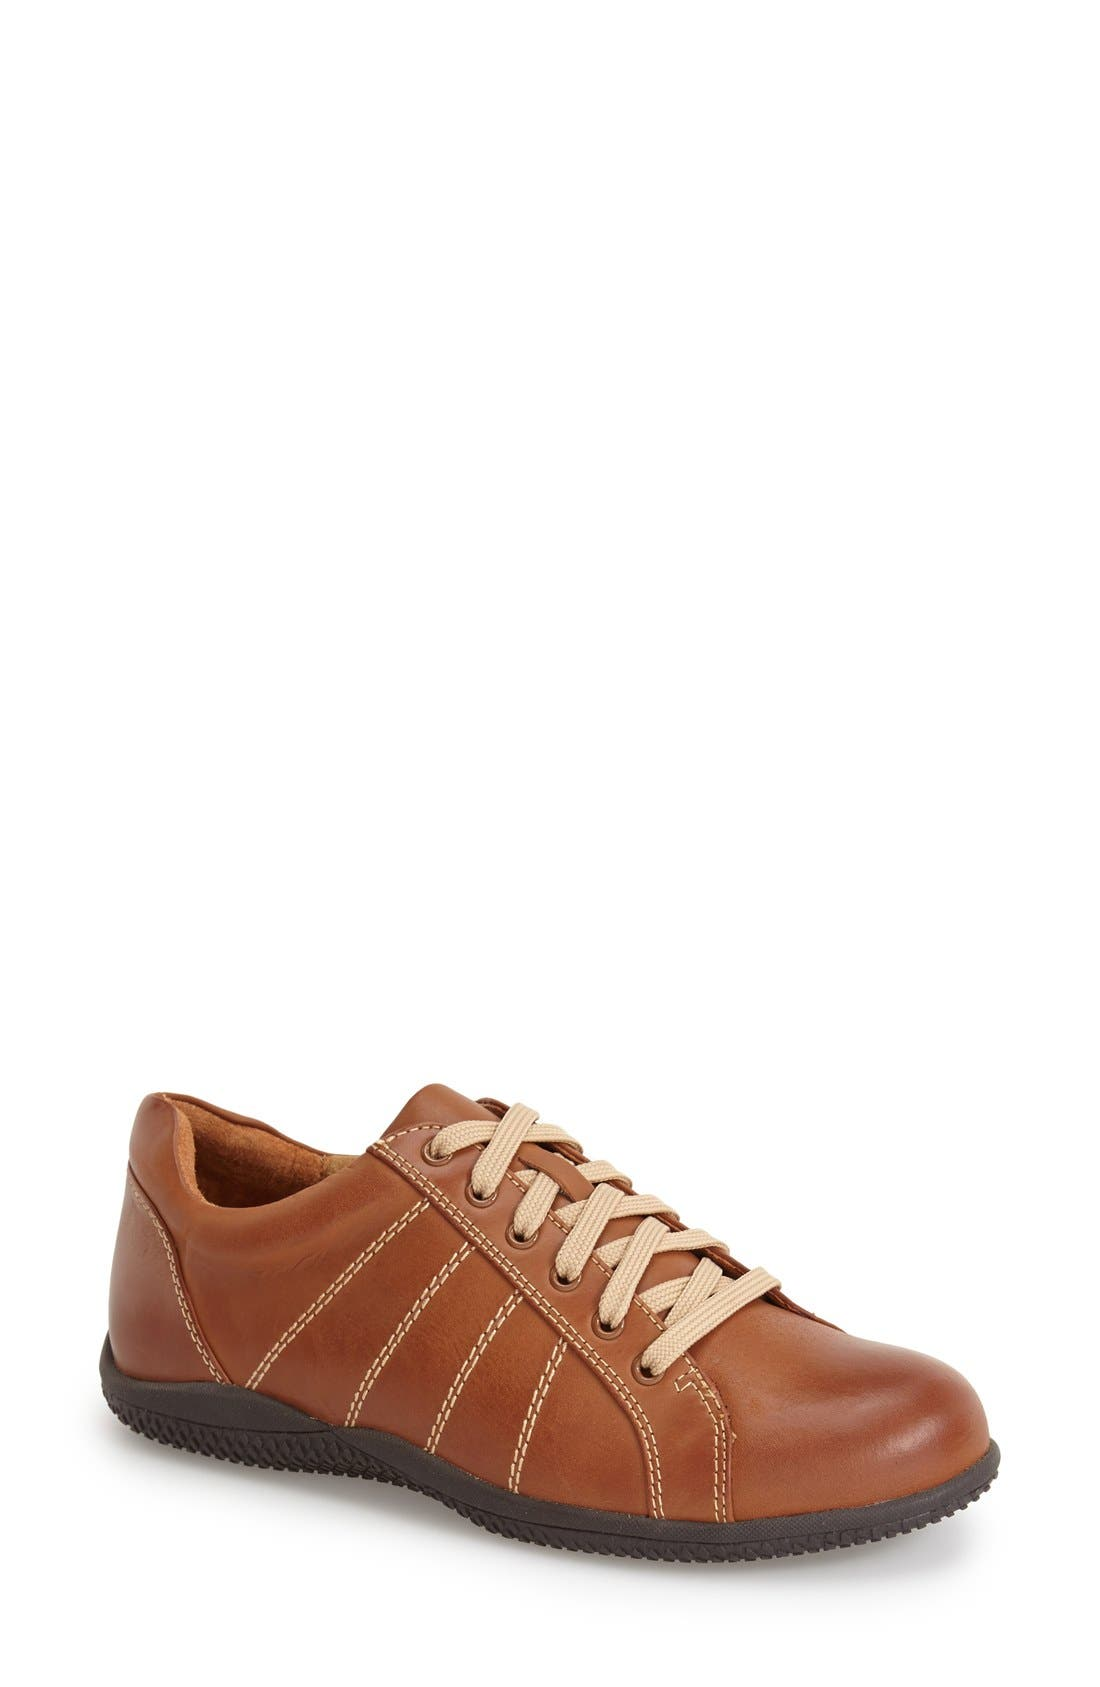 'Hickory' Sneaker,                         Main,                         color, Luggage